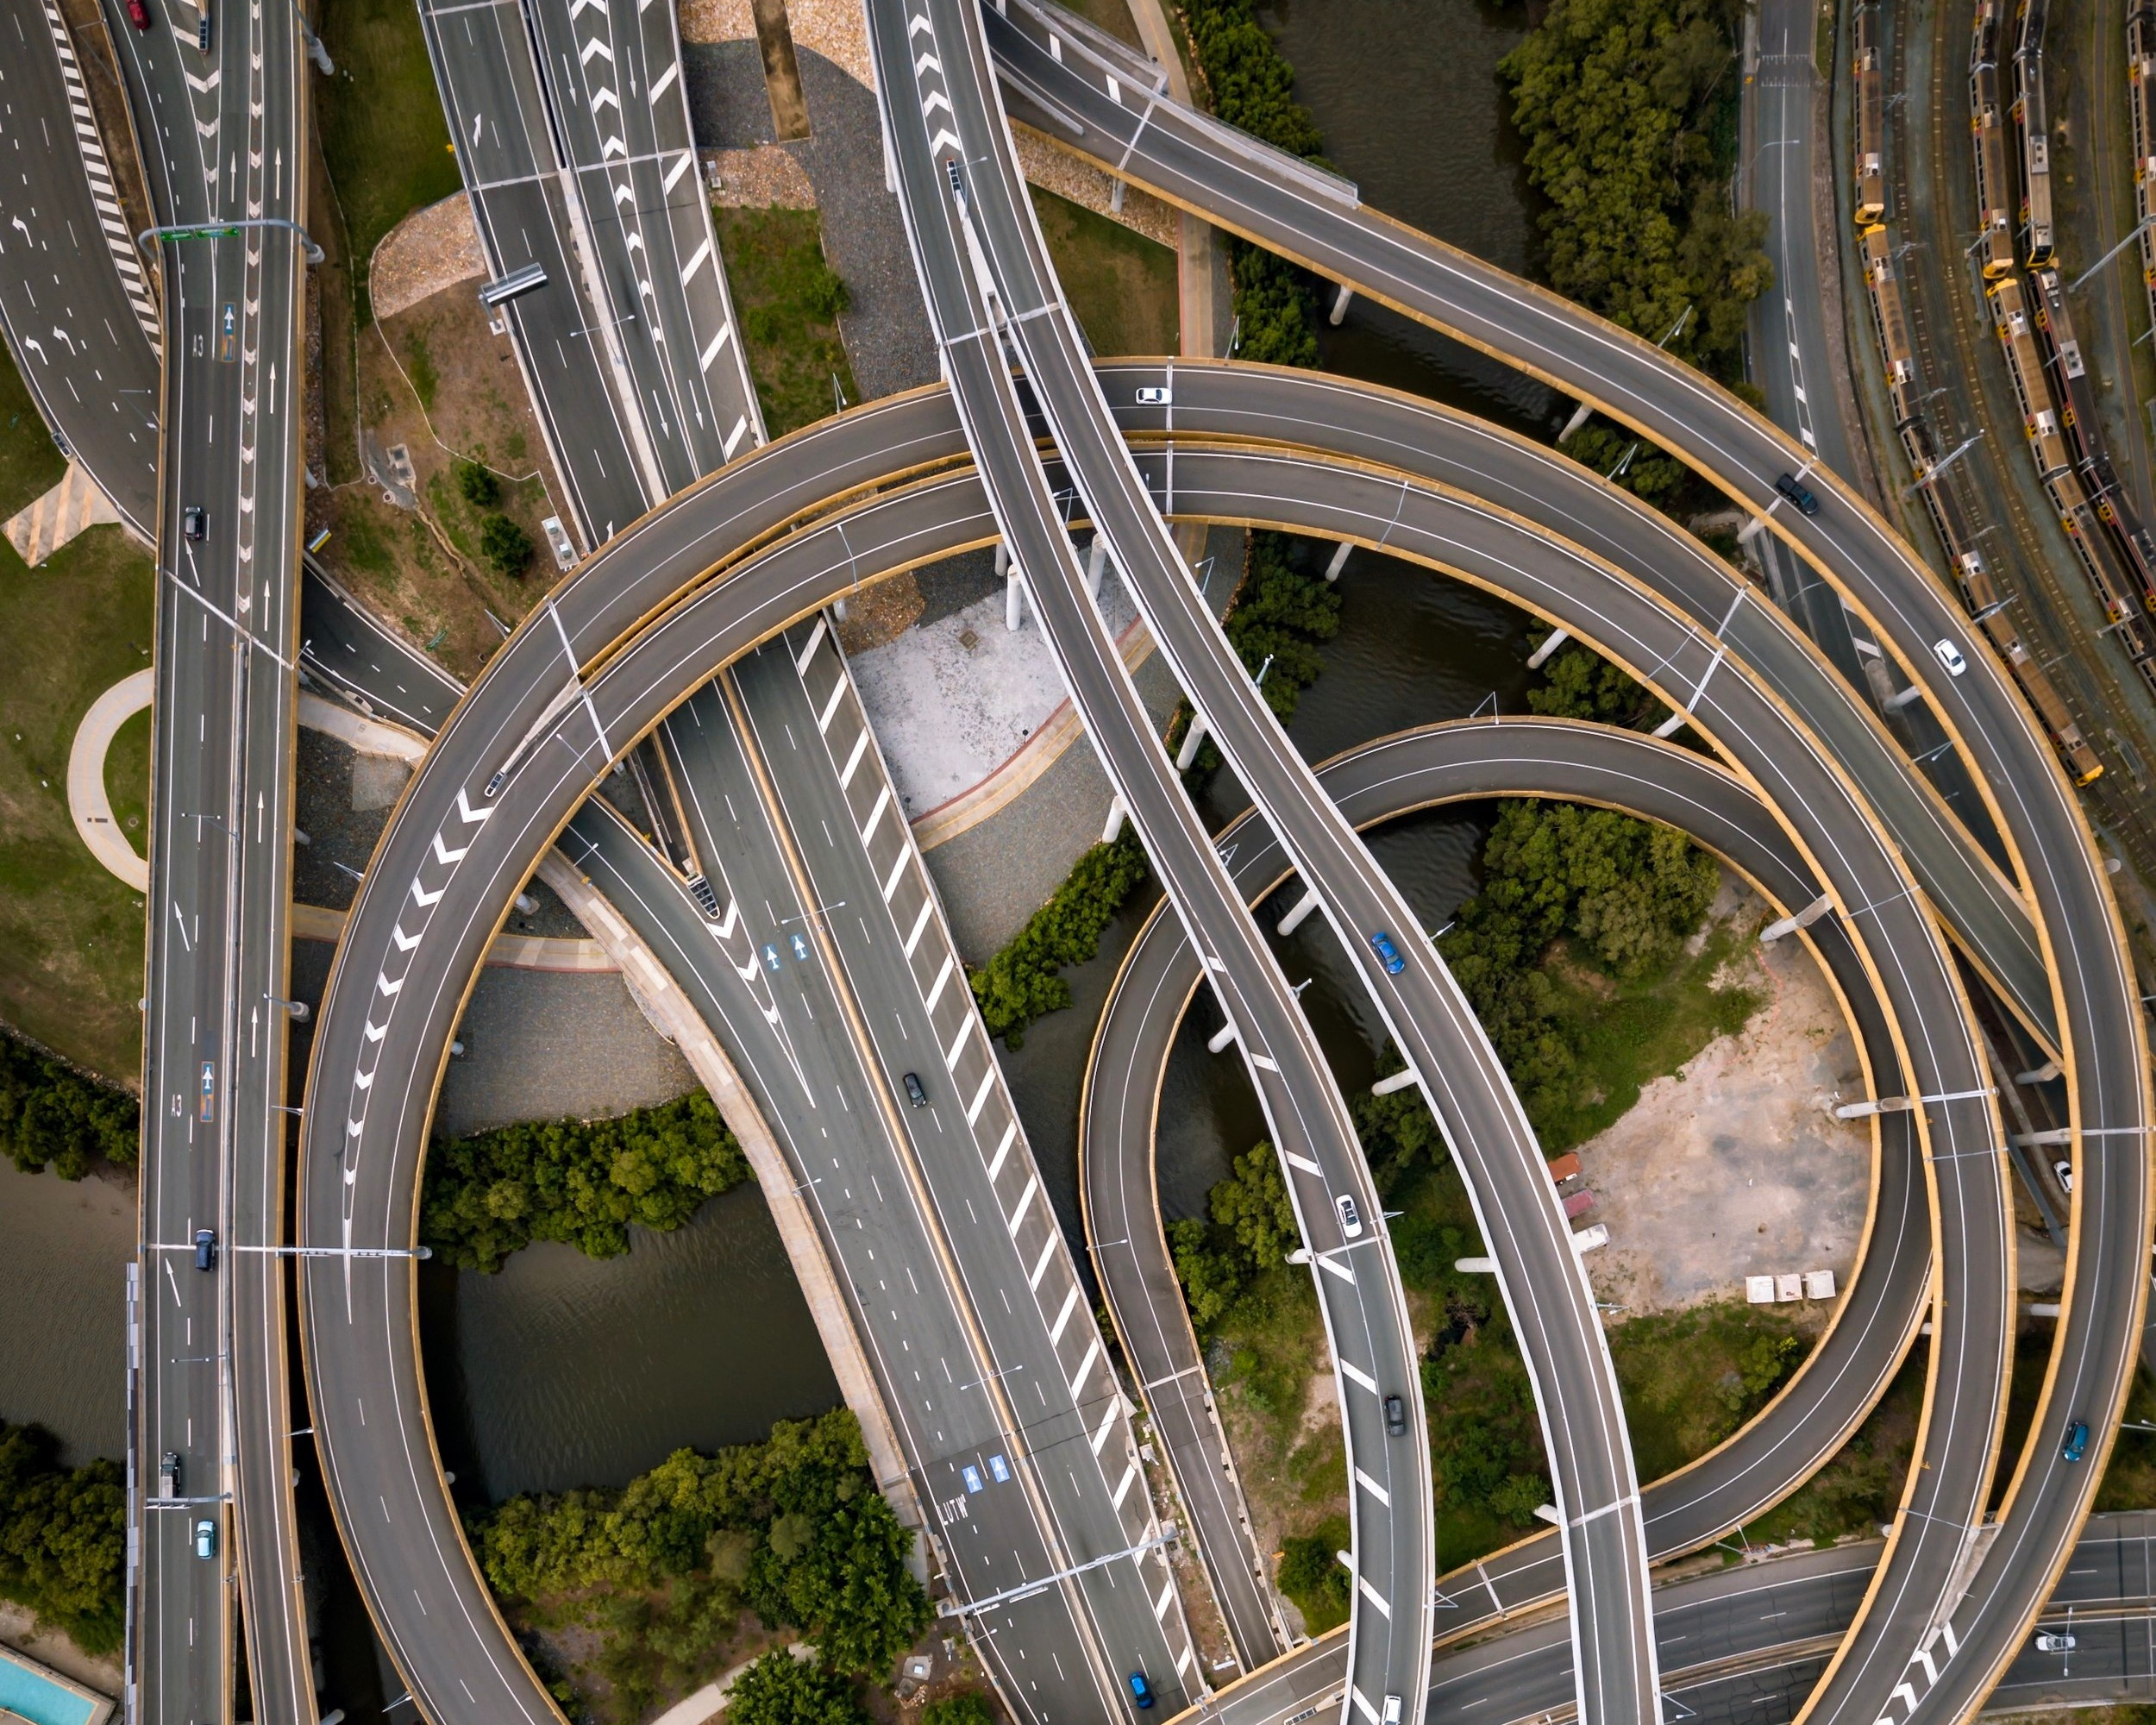 Architecture Advisory - As with any great project, one must lay out the blueprint before they begin building. The customizable nature of the Magento platform leads way to multiple decision points throughout a project. Each decision may impact modules, integrations, functionalities or performance. Having a senior team to plan the architecture for every milestone will save time, money and minimize risk.